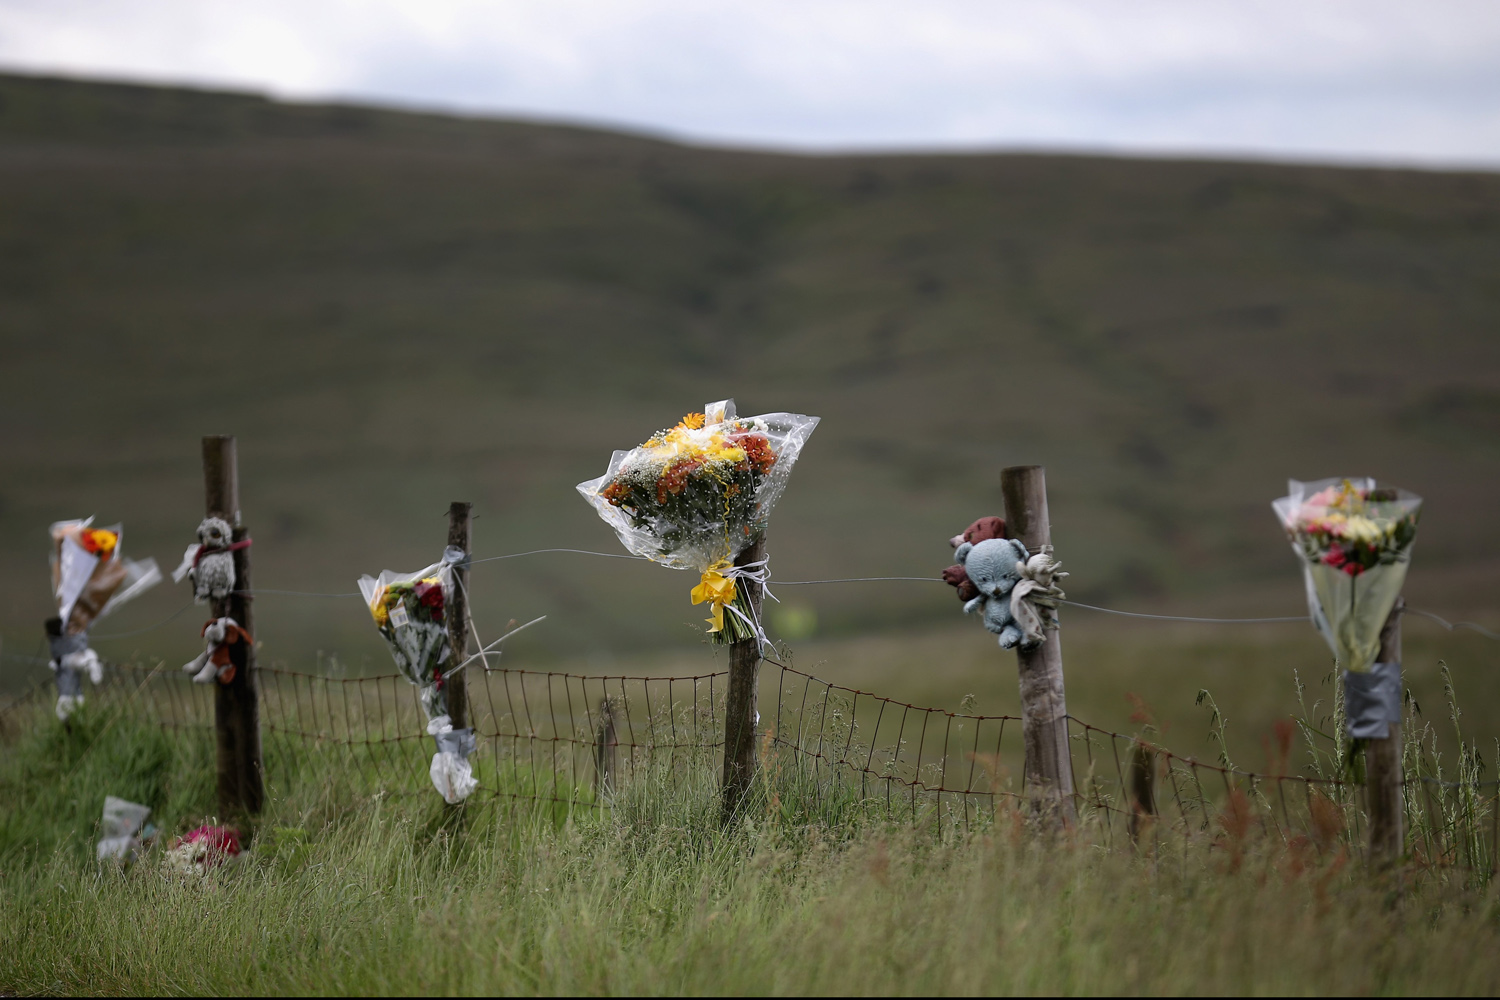 Jun. 16, 2014.  Floral tributes overlook Saddleworth Moor where the body of missing Keith Bennett may be buried in Saddleworth, United Kingdom.